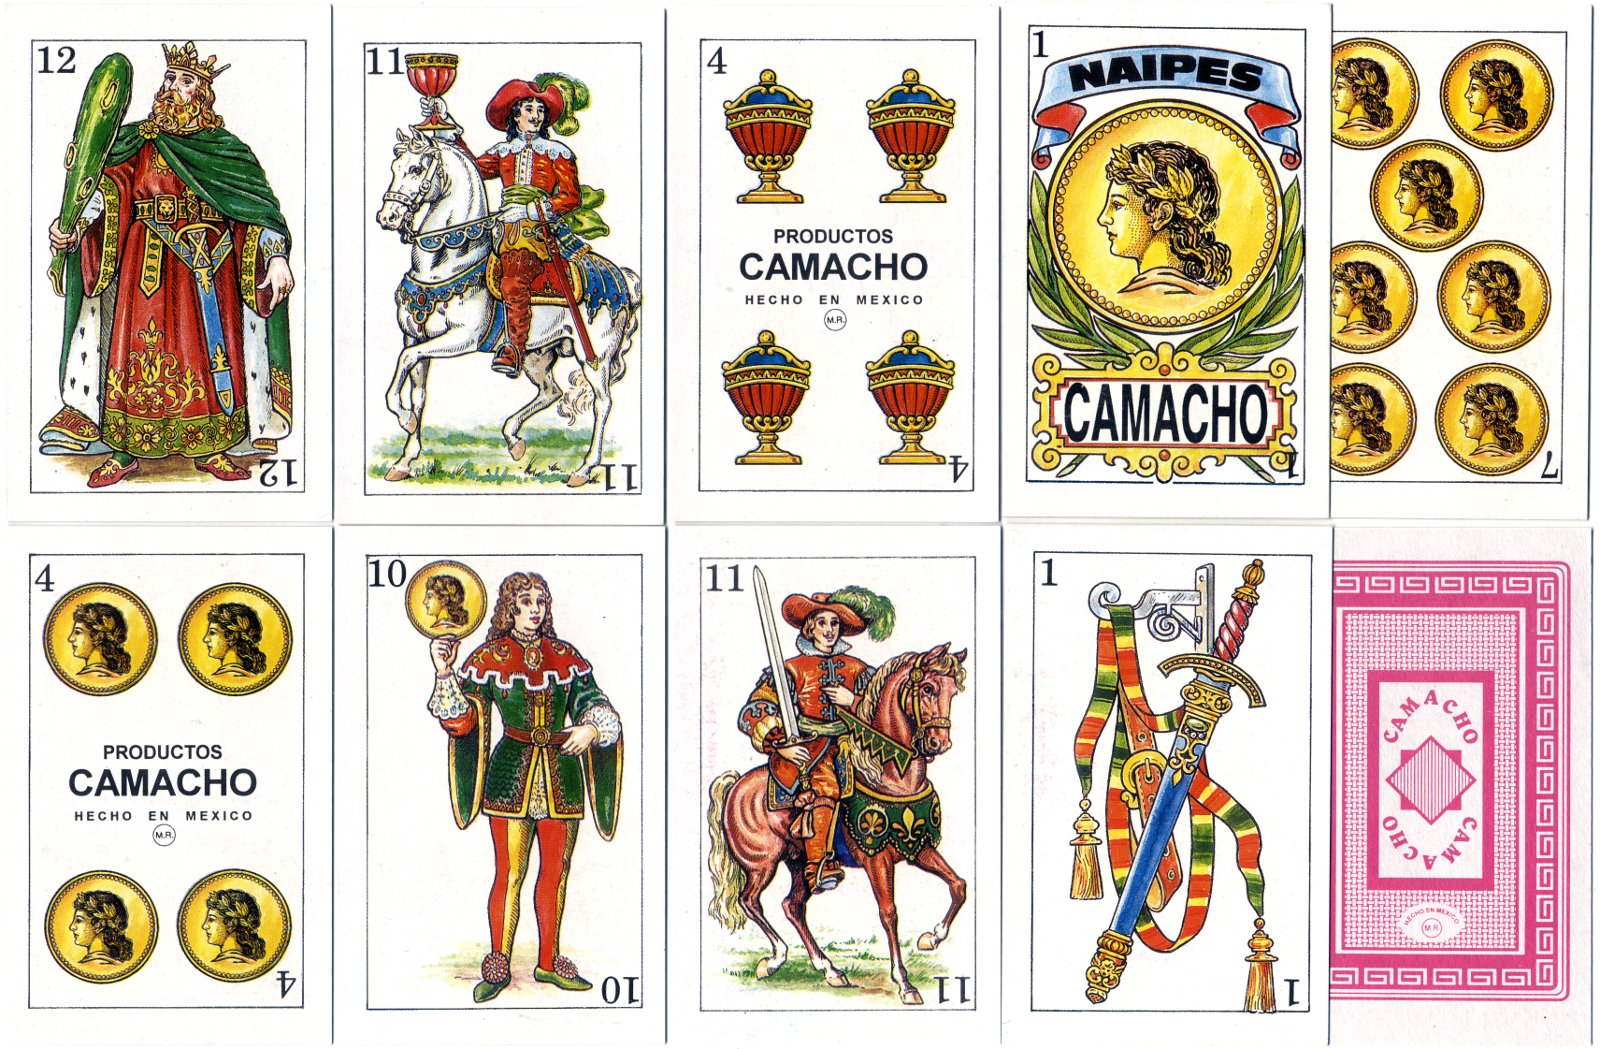 Playing Cards made by Productos Camacho, Mexico, c.2003